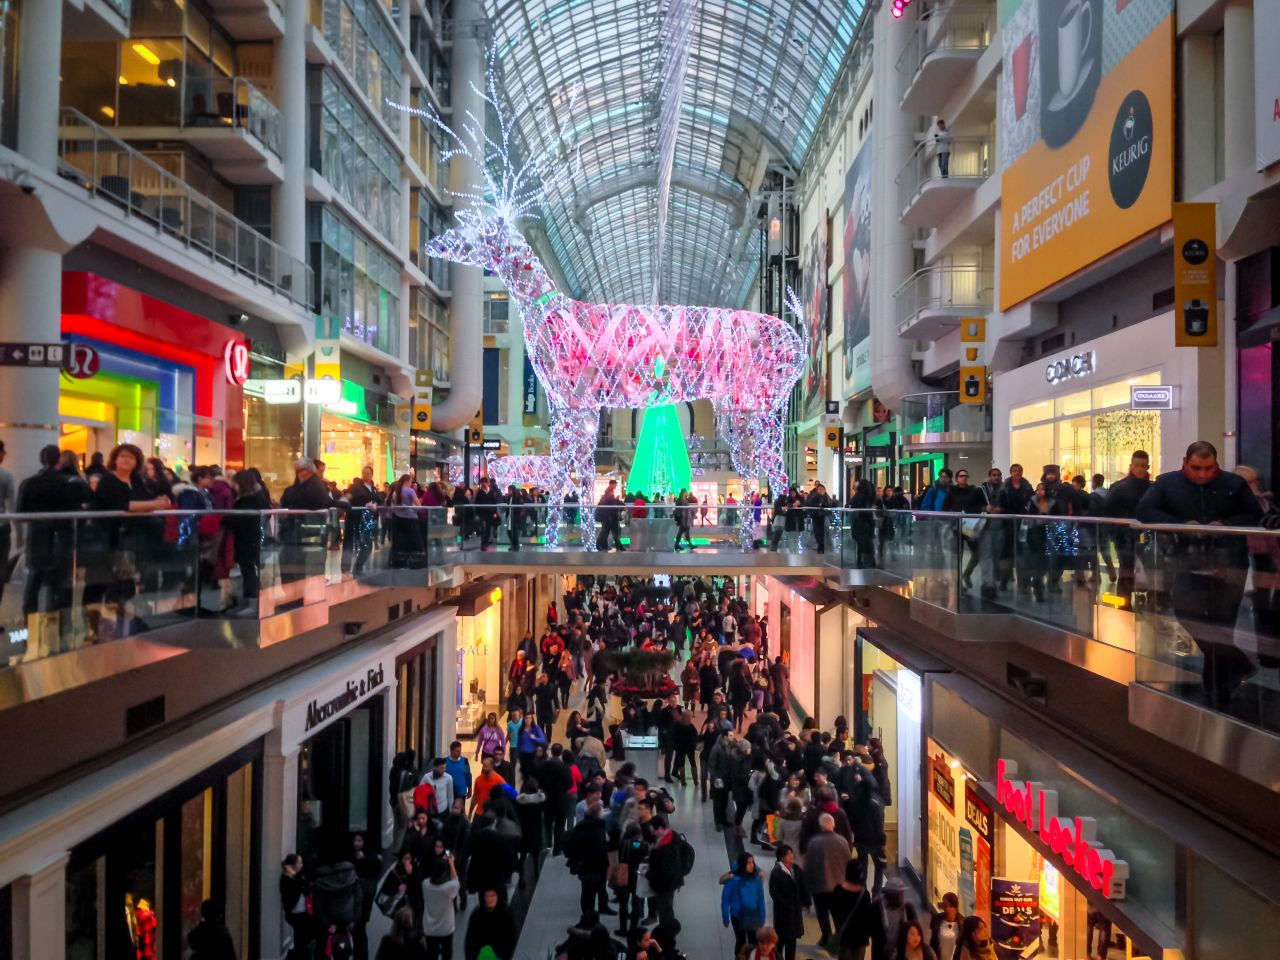 The day after Thanksgiving is often a holiday and is also known as Black Friday, one of the year's most popular shopping days. In 2008, the day was also designated Native American Heritage Day.